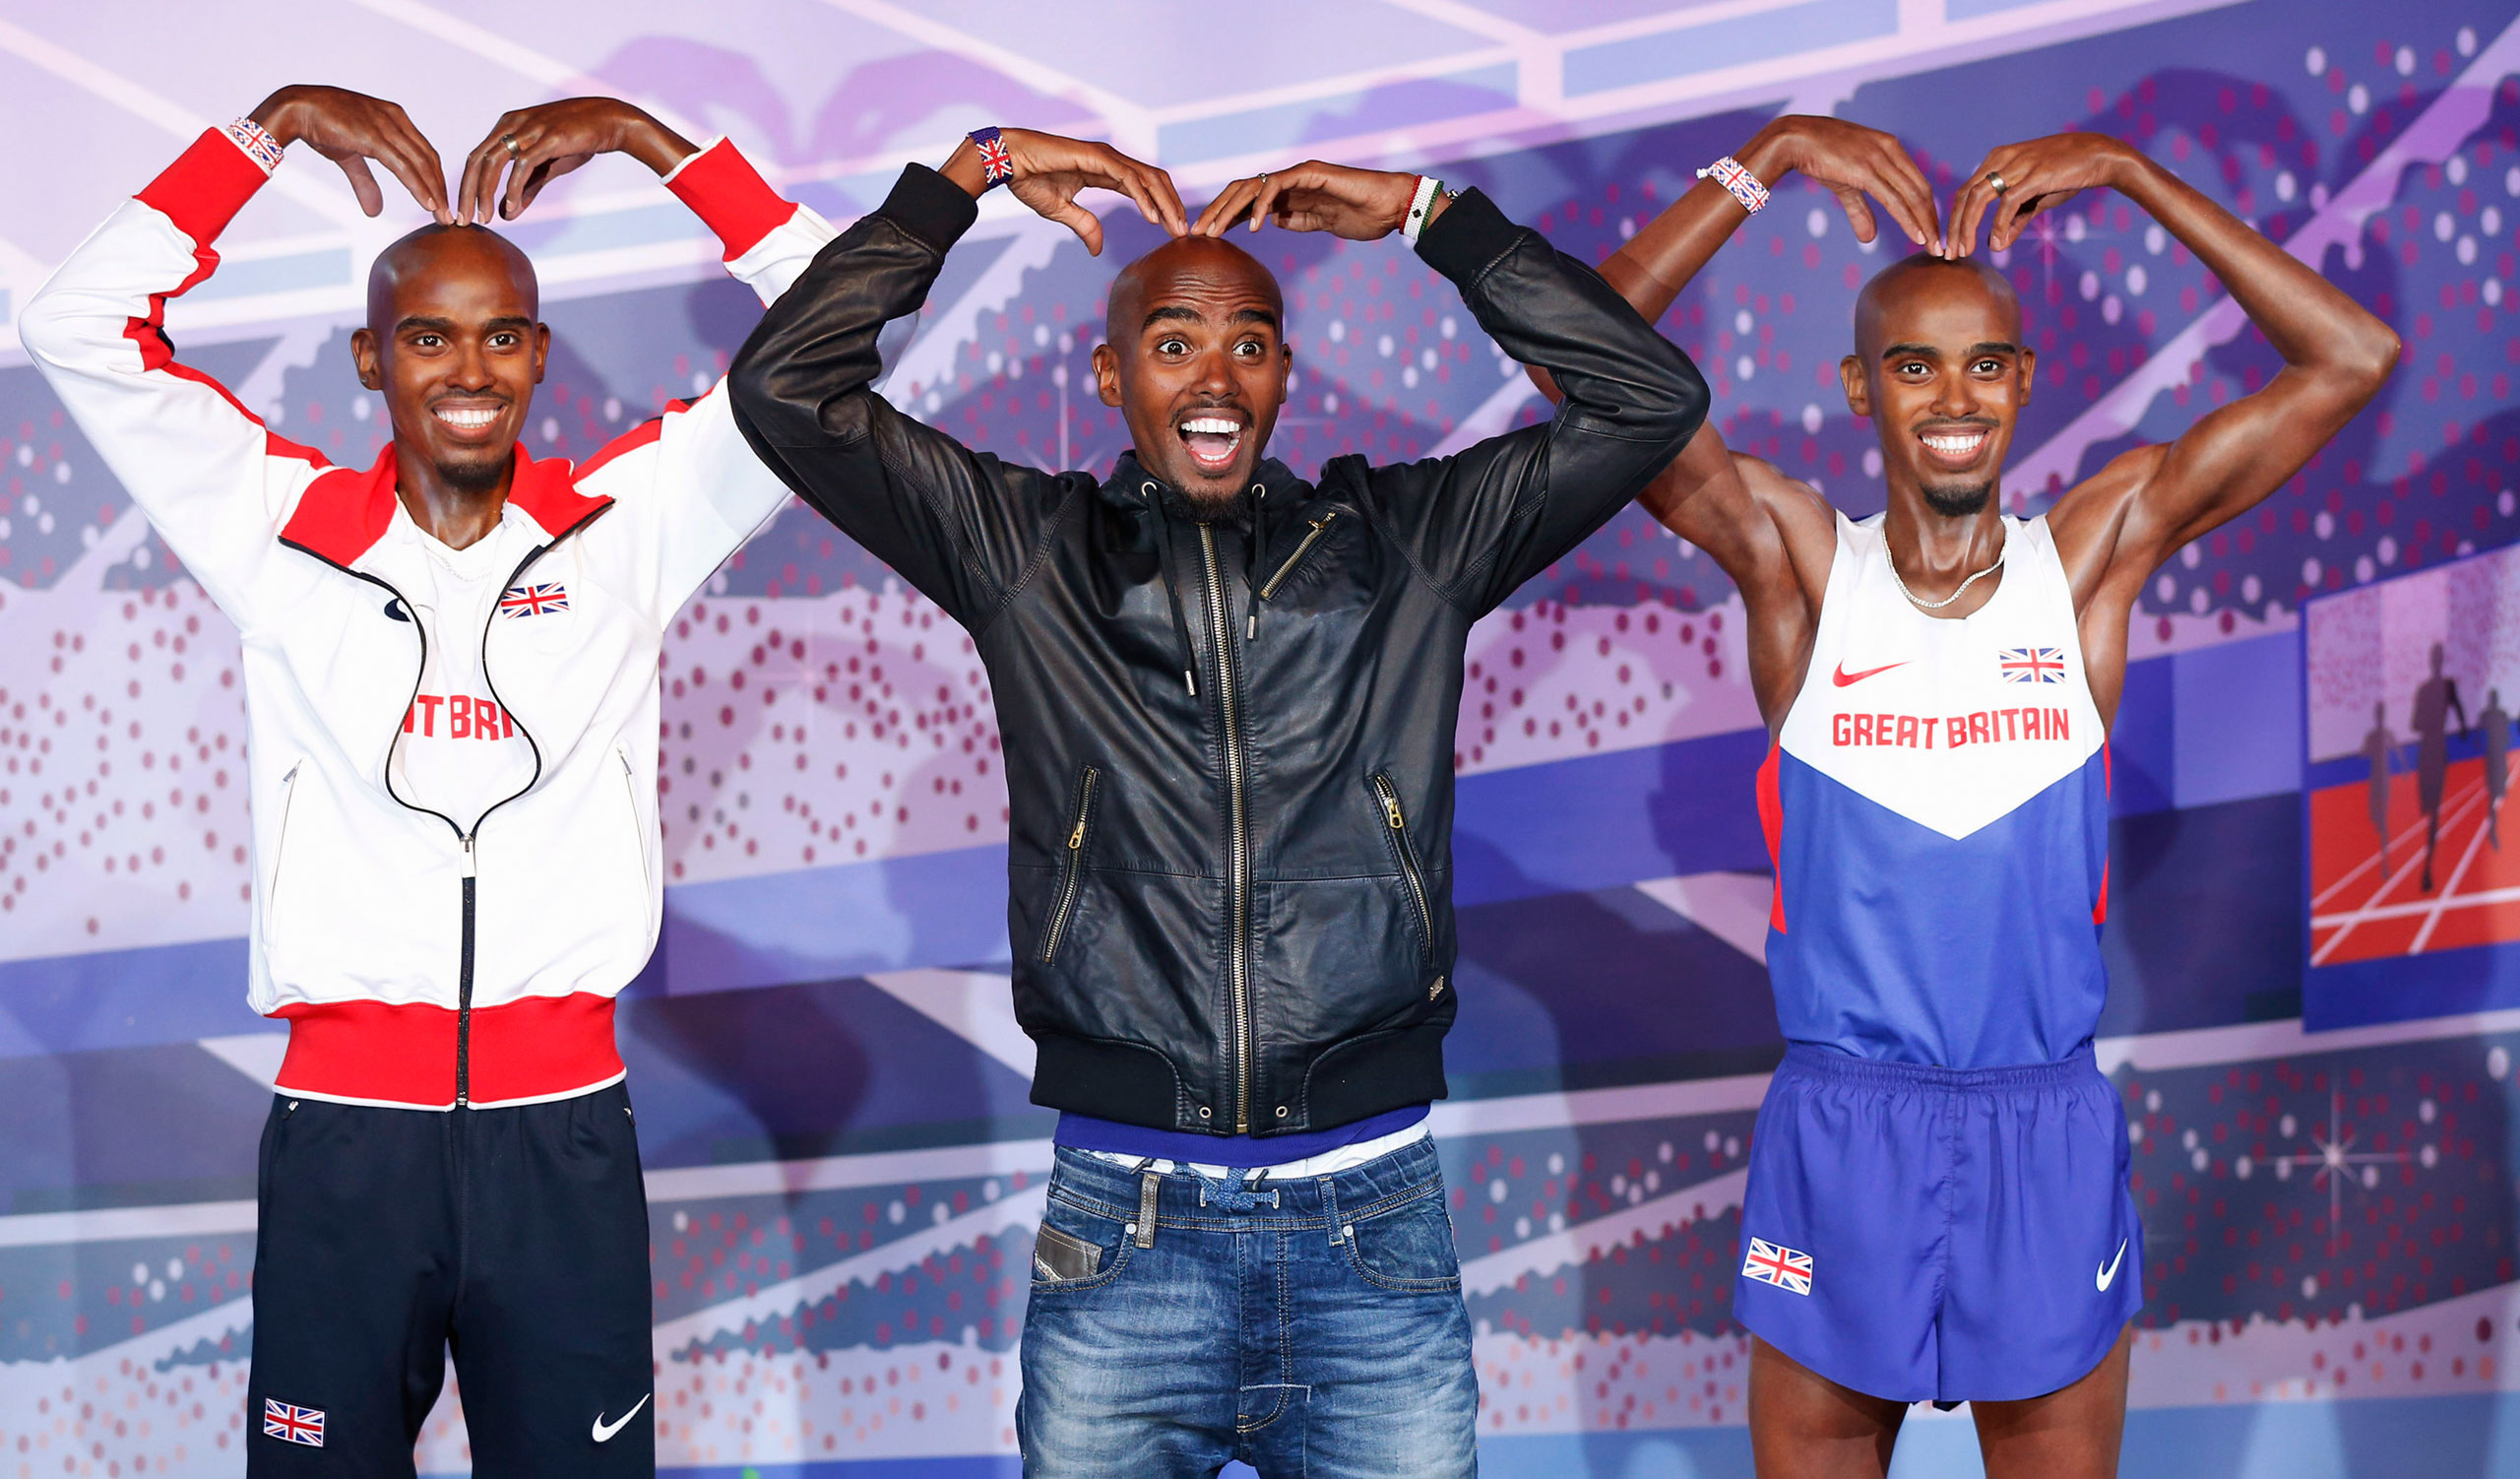 British Olympic athlete Mo Farah, center, poses with two of his waxworks in London on April 14, 2014.